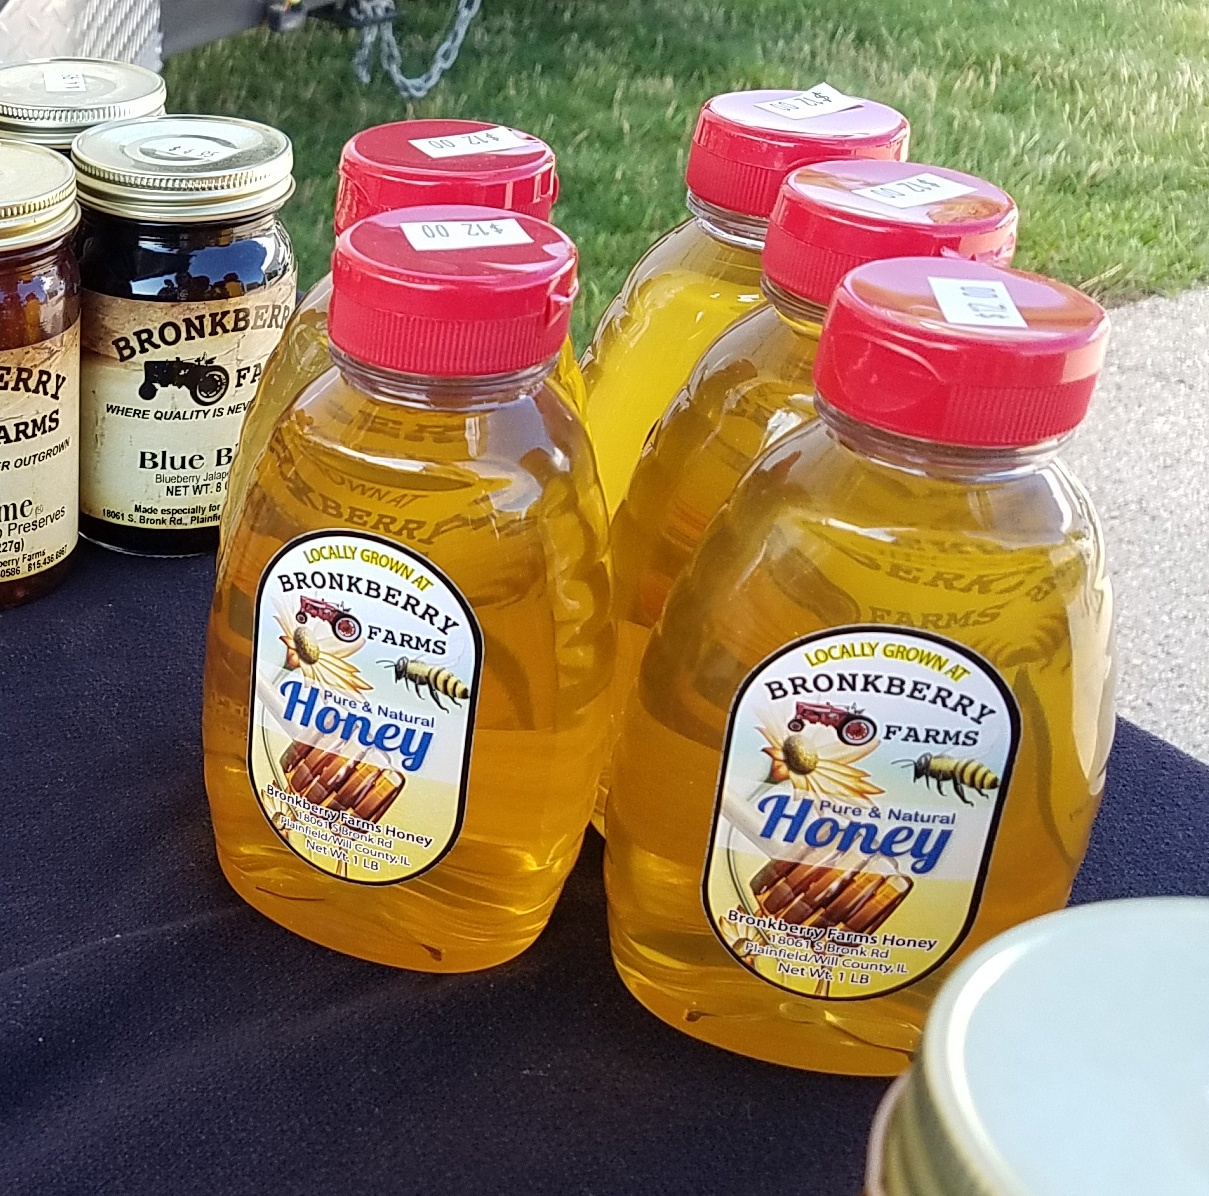 all-natural honey bronkberry farms 8 great finds at the jjc farmers market joliet junior college